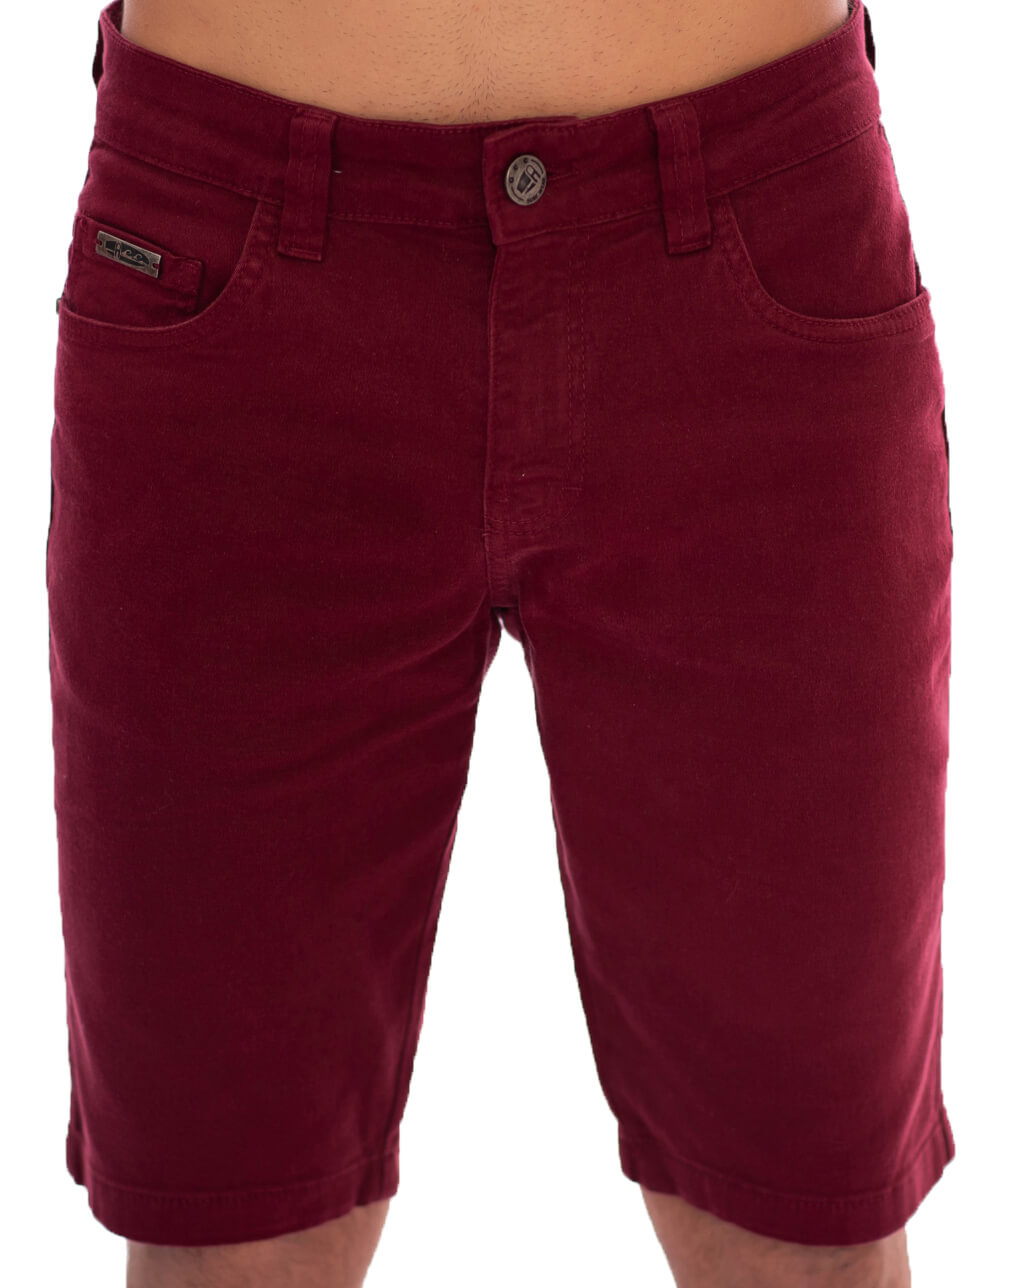 BERMUDA JEANS AEE SURF SLIM COLORIDA